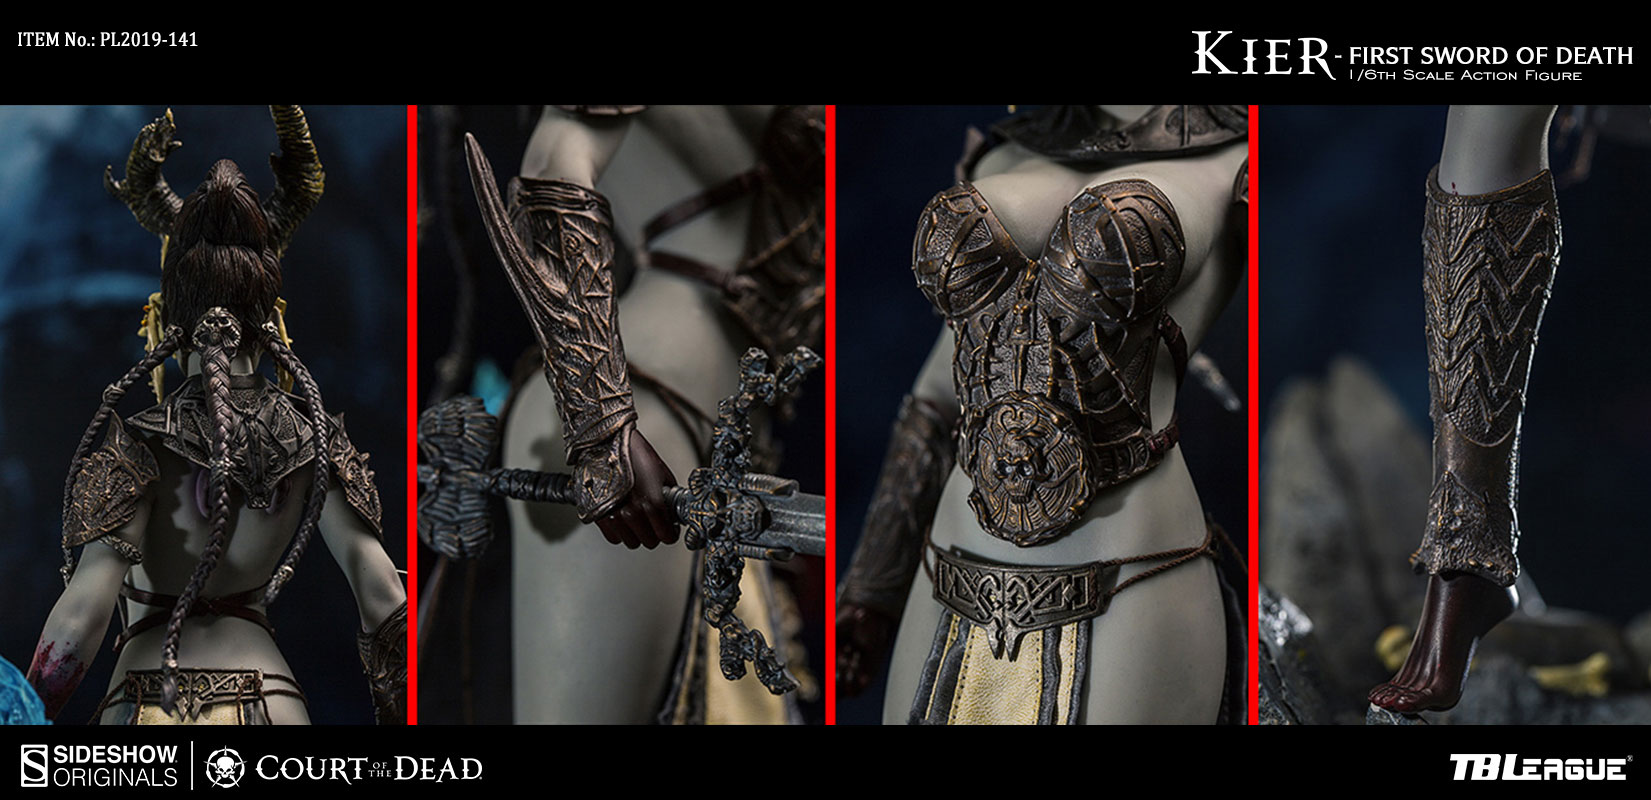 Kier - First Sword of Death Sixth Scale Action Figure